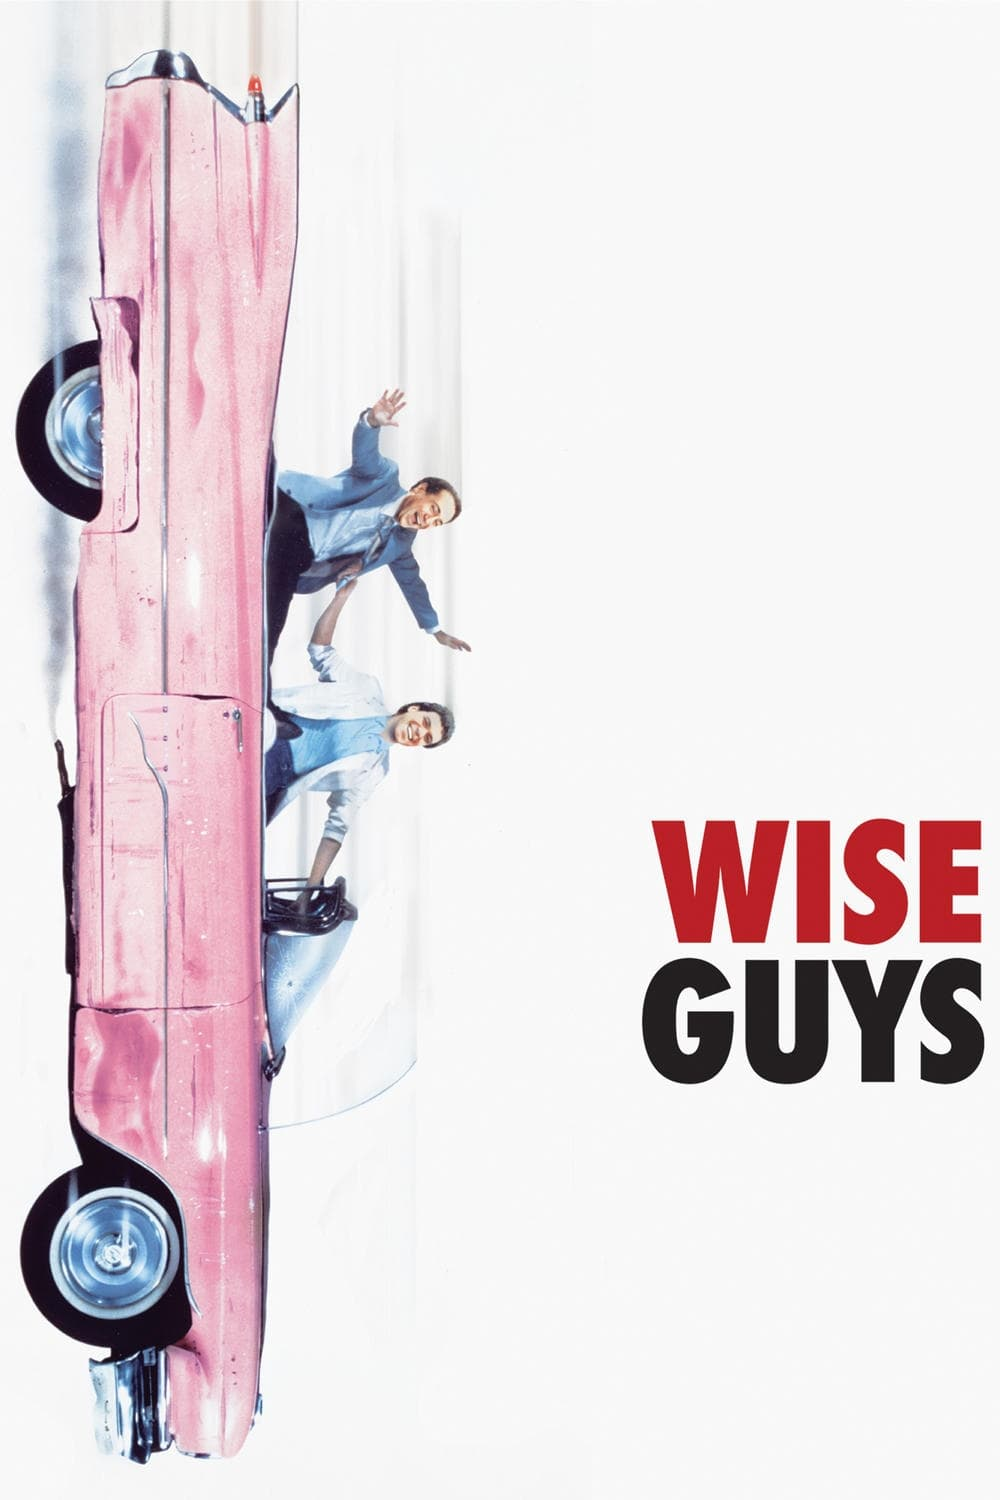 Image Wise Guys